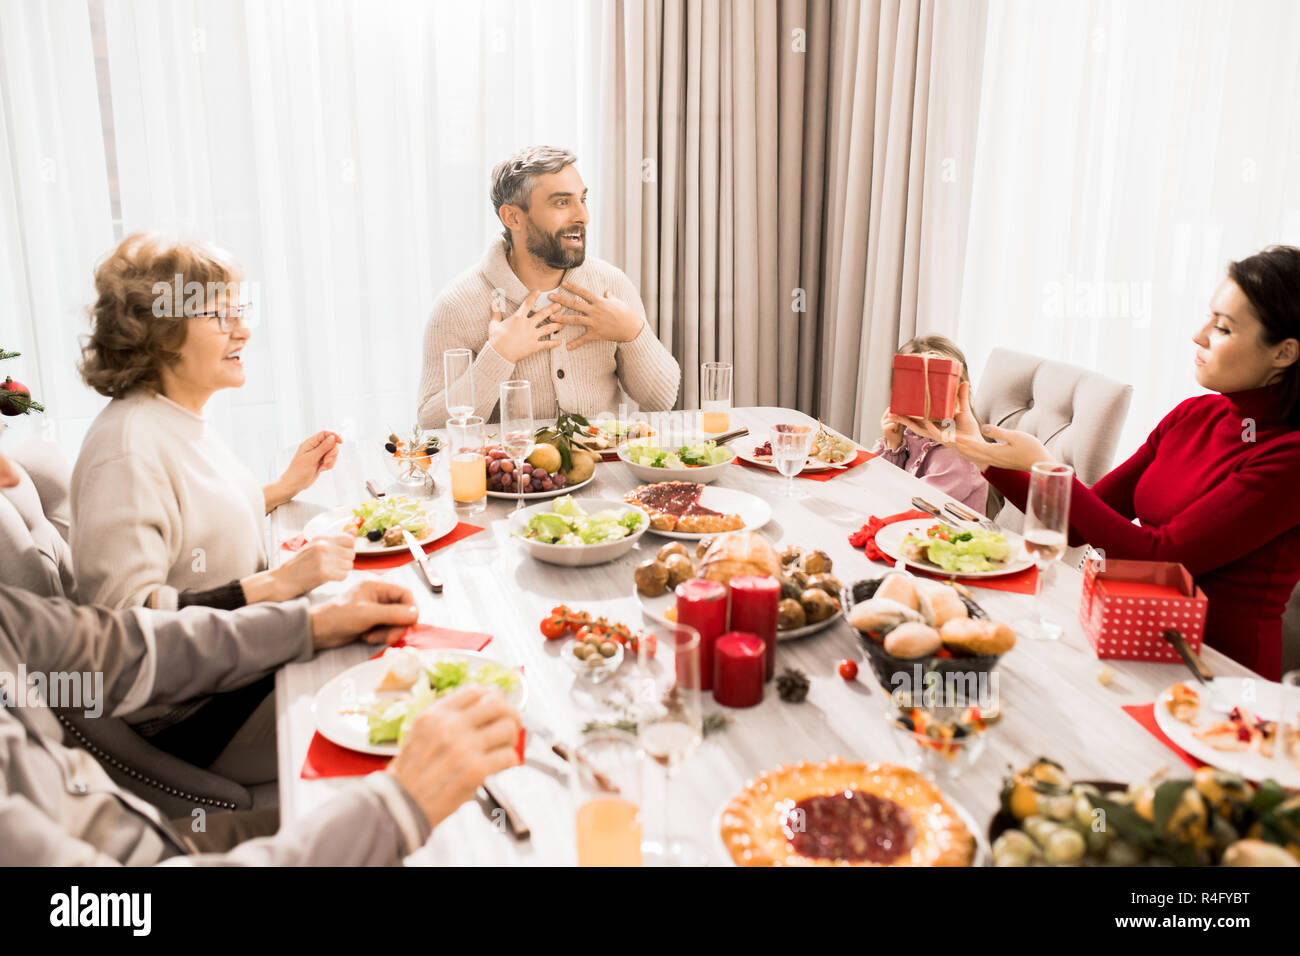 Family Exchanging Christmas Presents - Stock Image